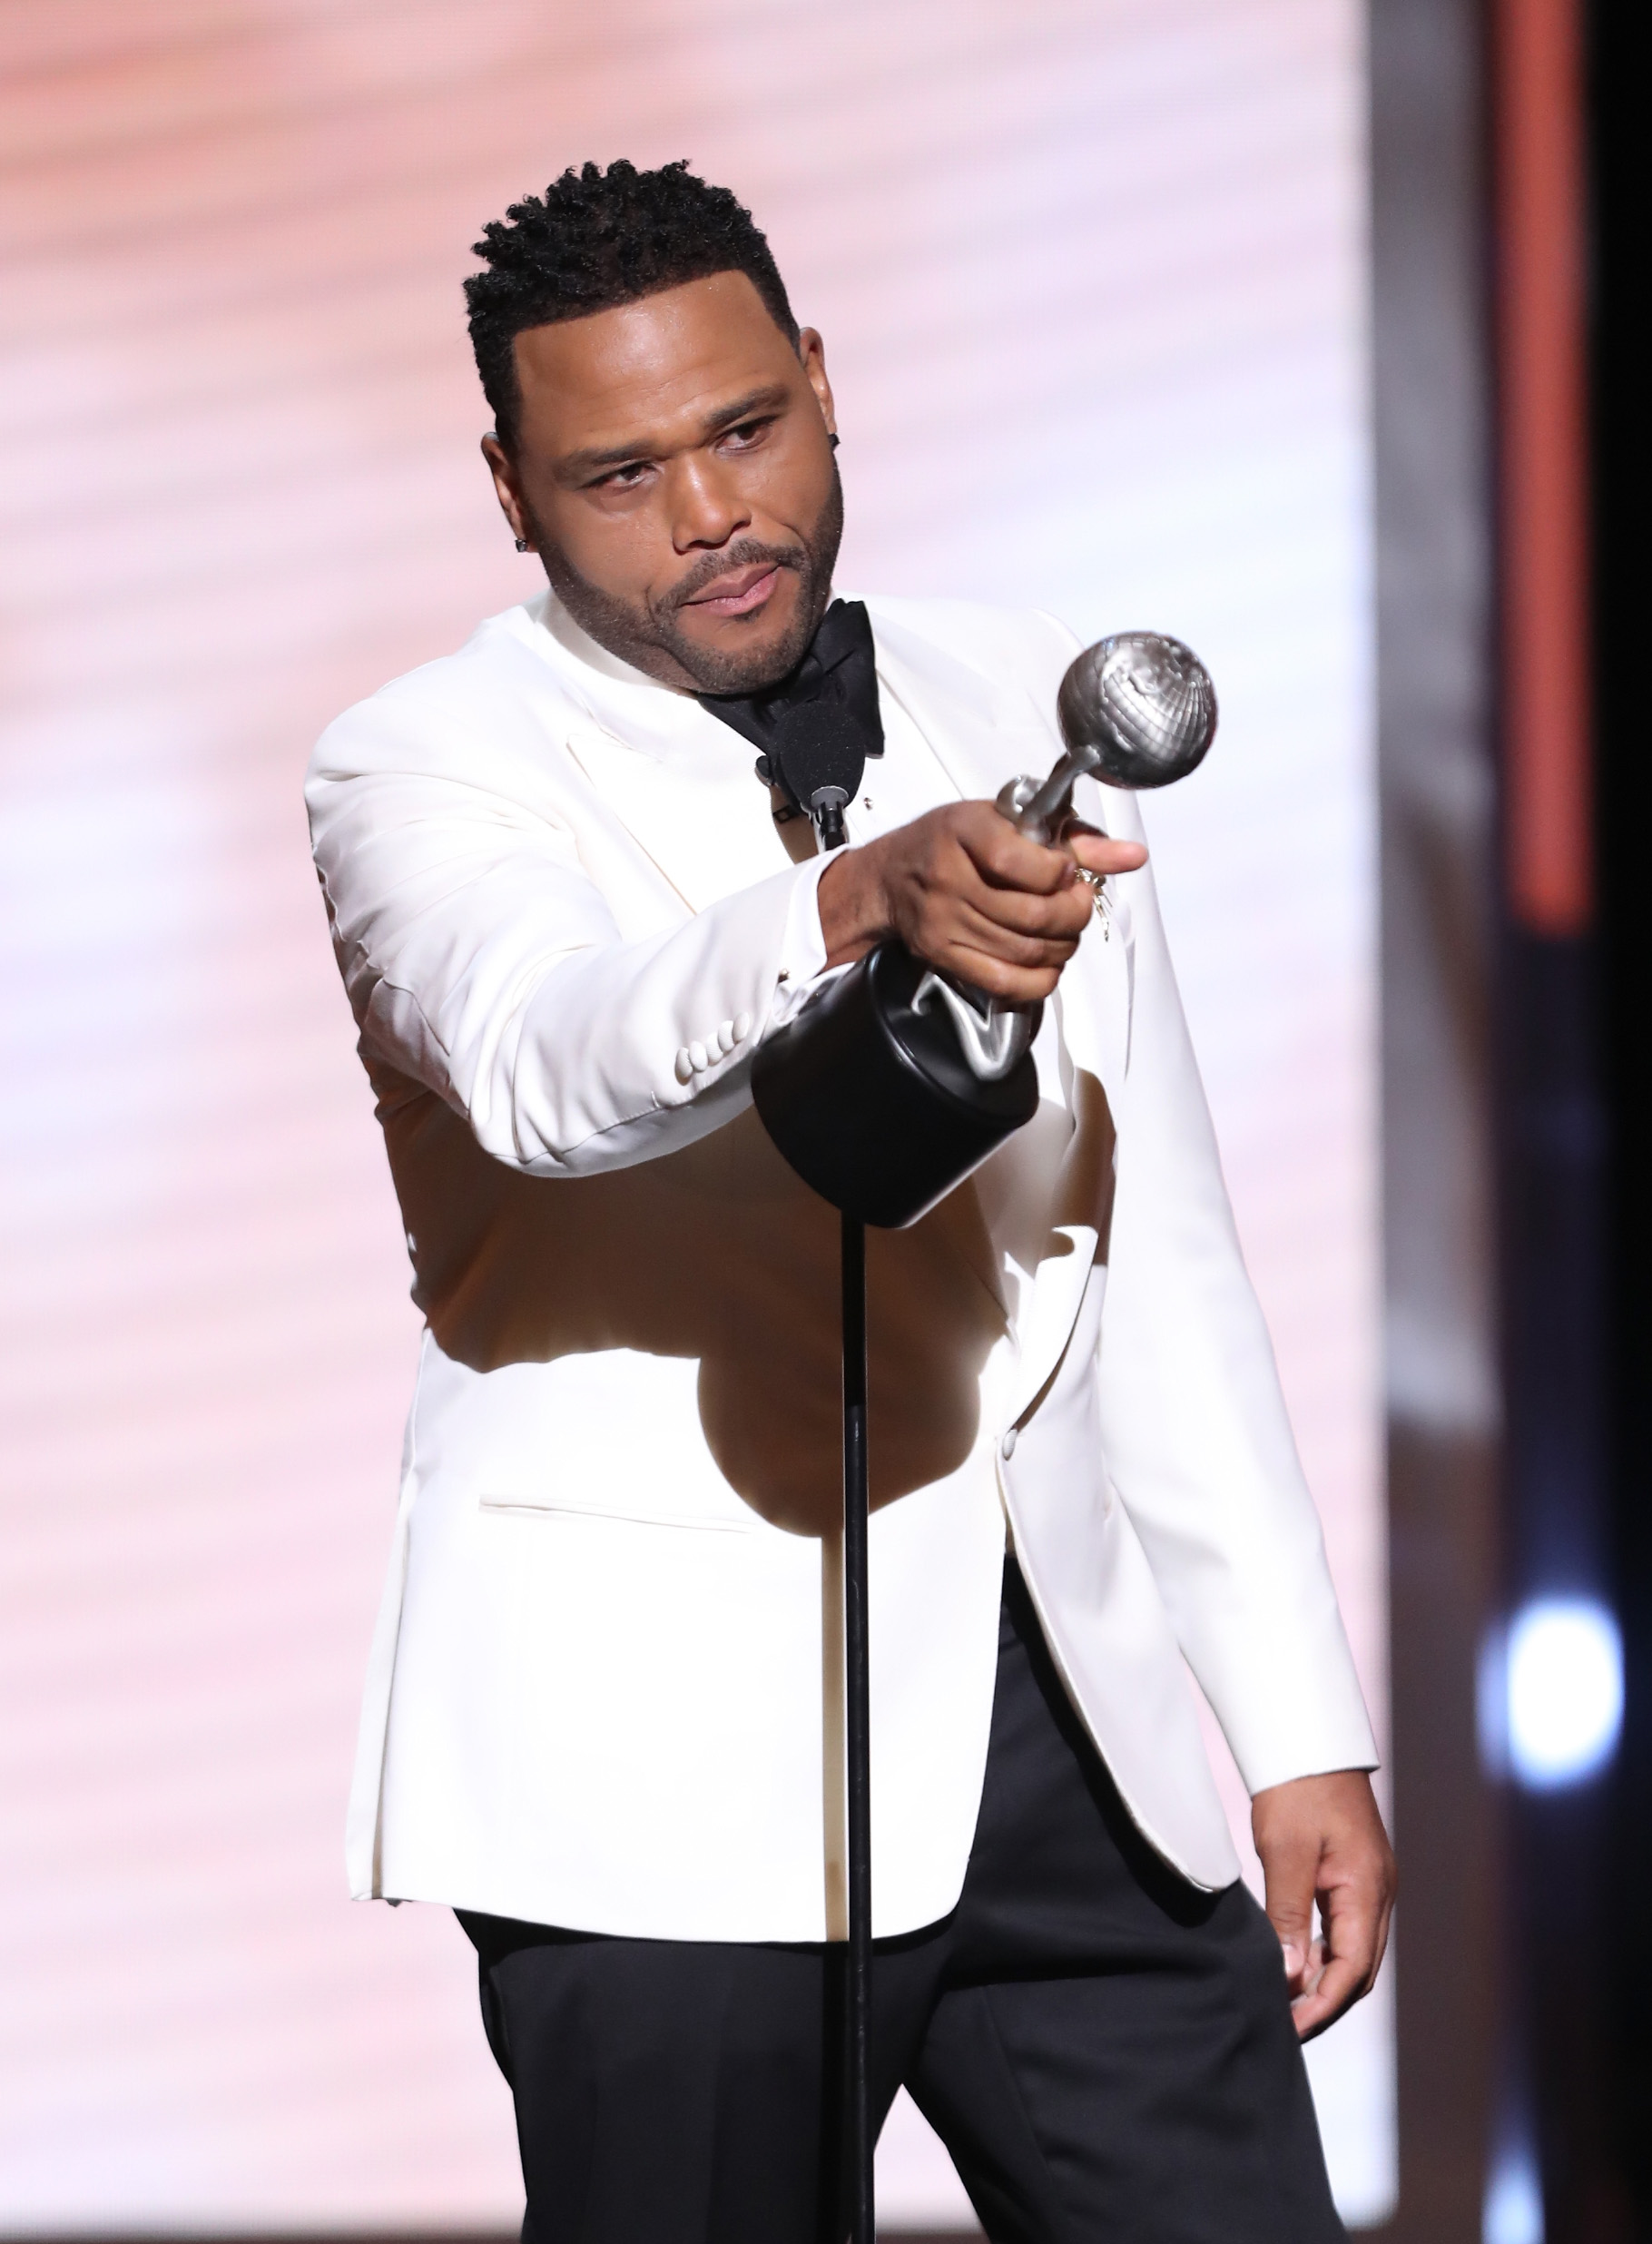 49th-NAACP-Image-Awards-Complete-List-Of-Winners